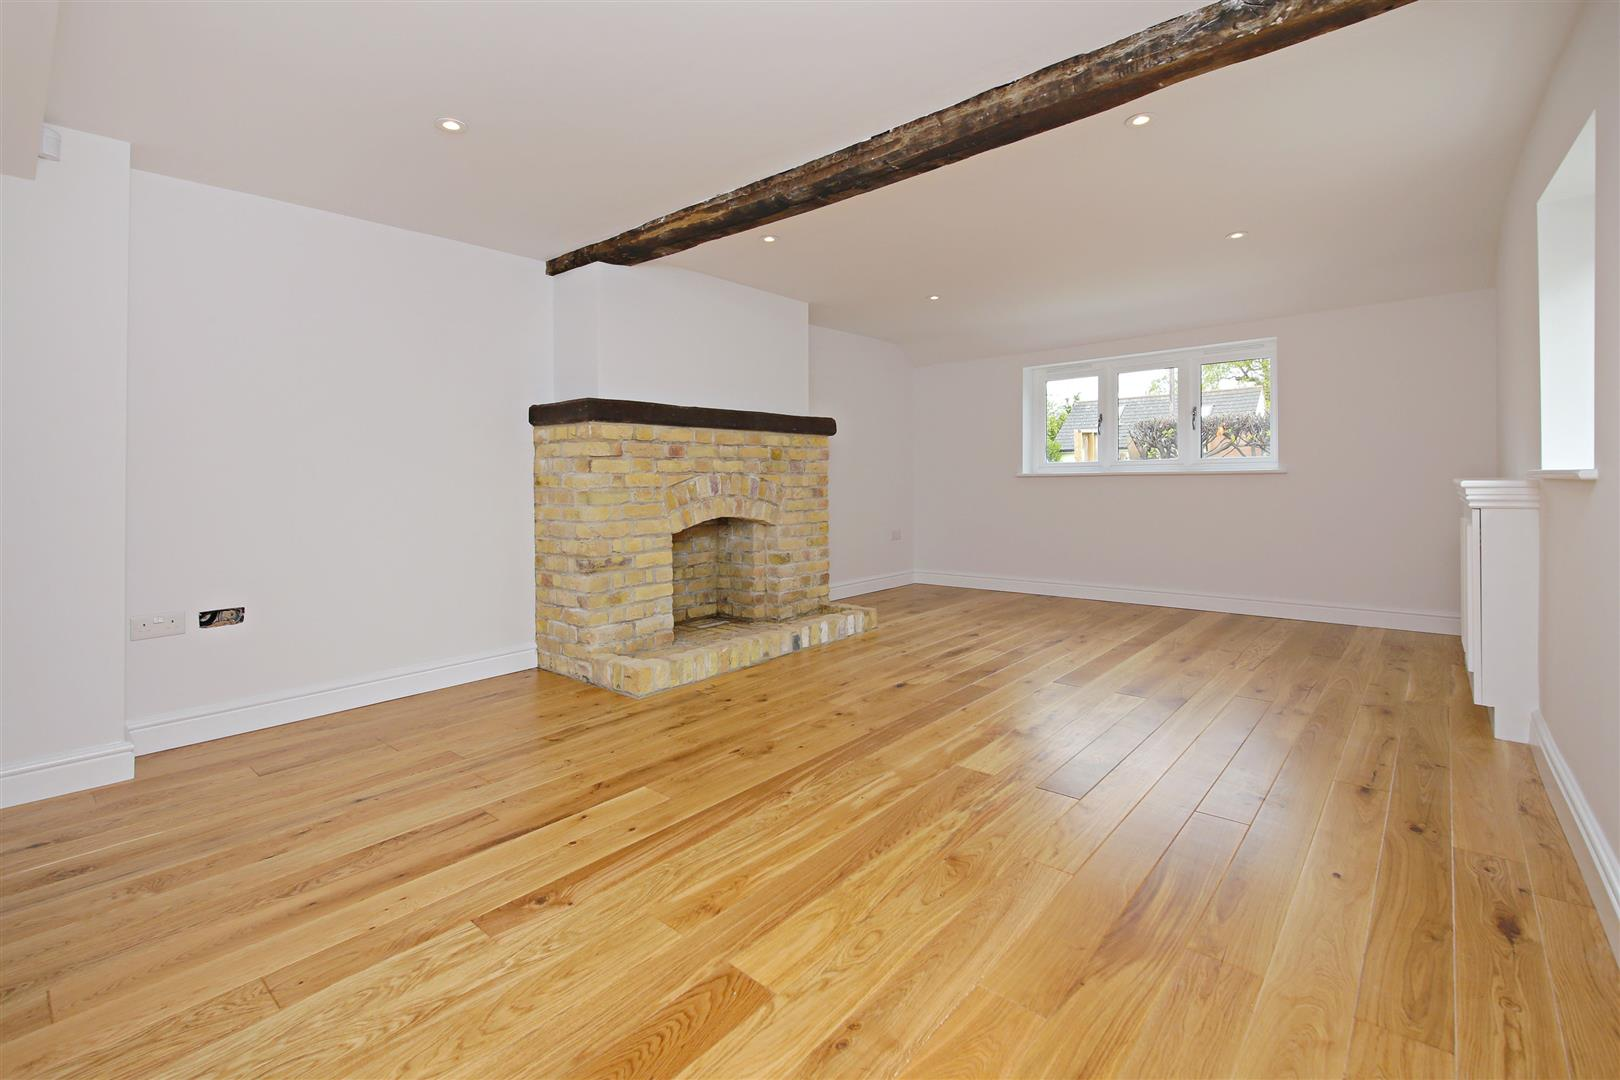 4 bed for sale in London Road, Shenley - (Property Image 1)